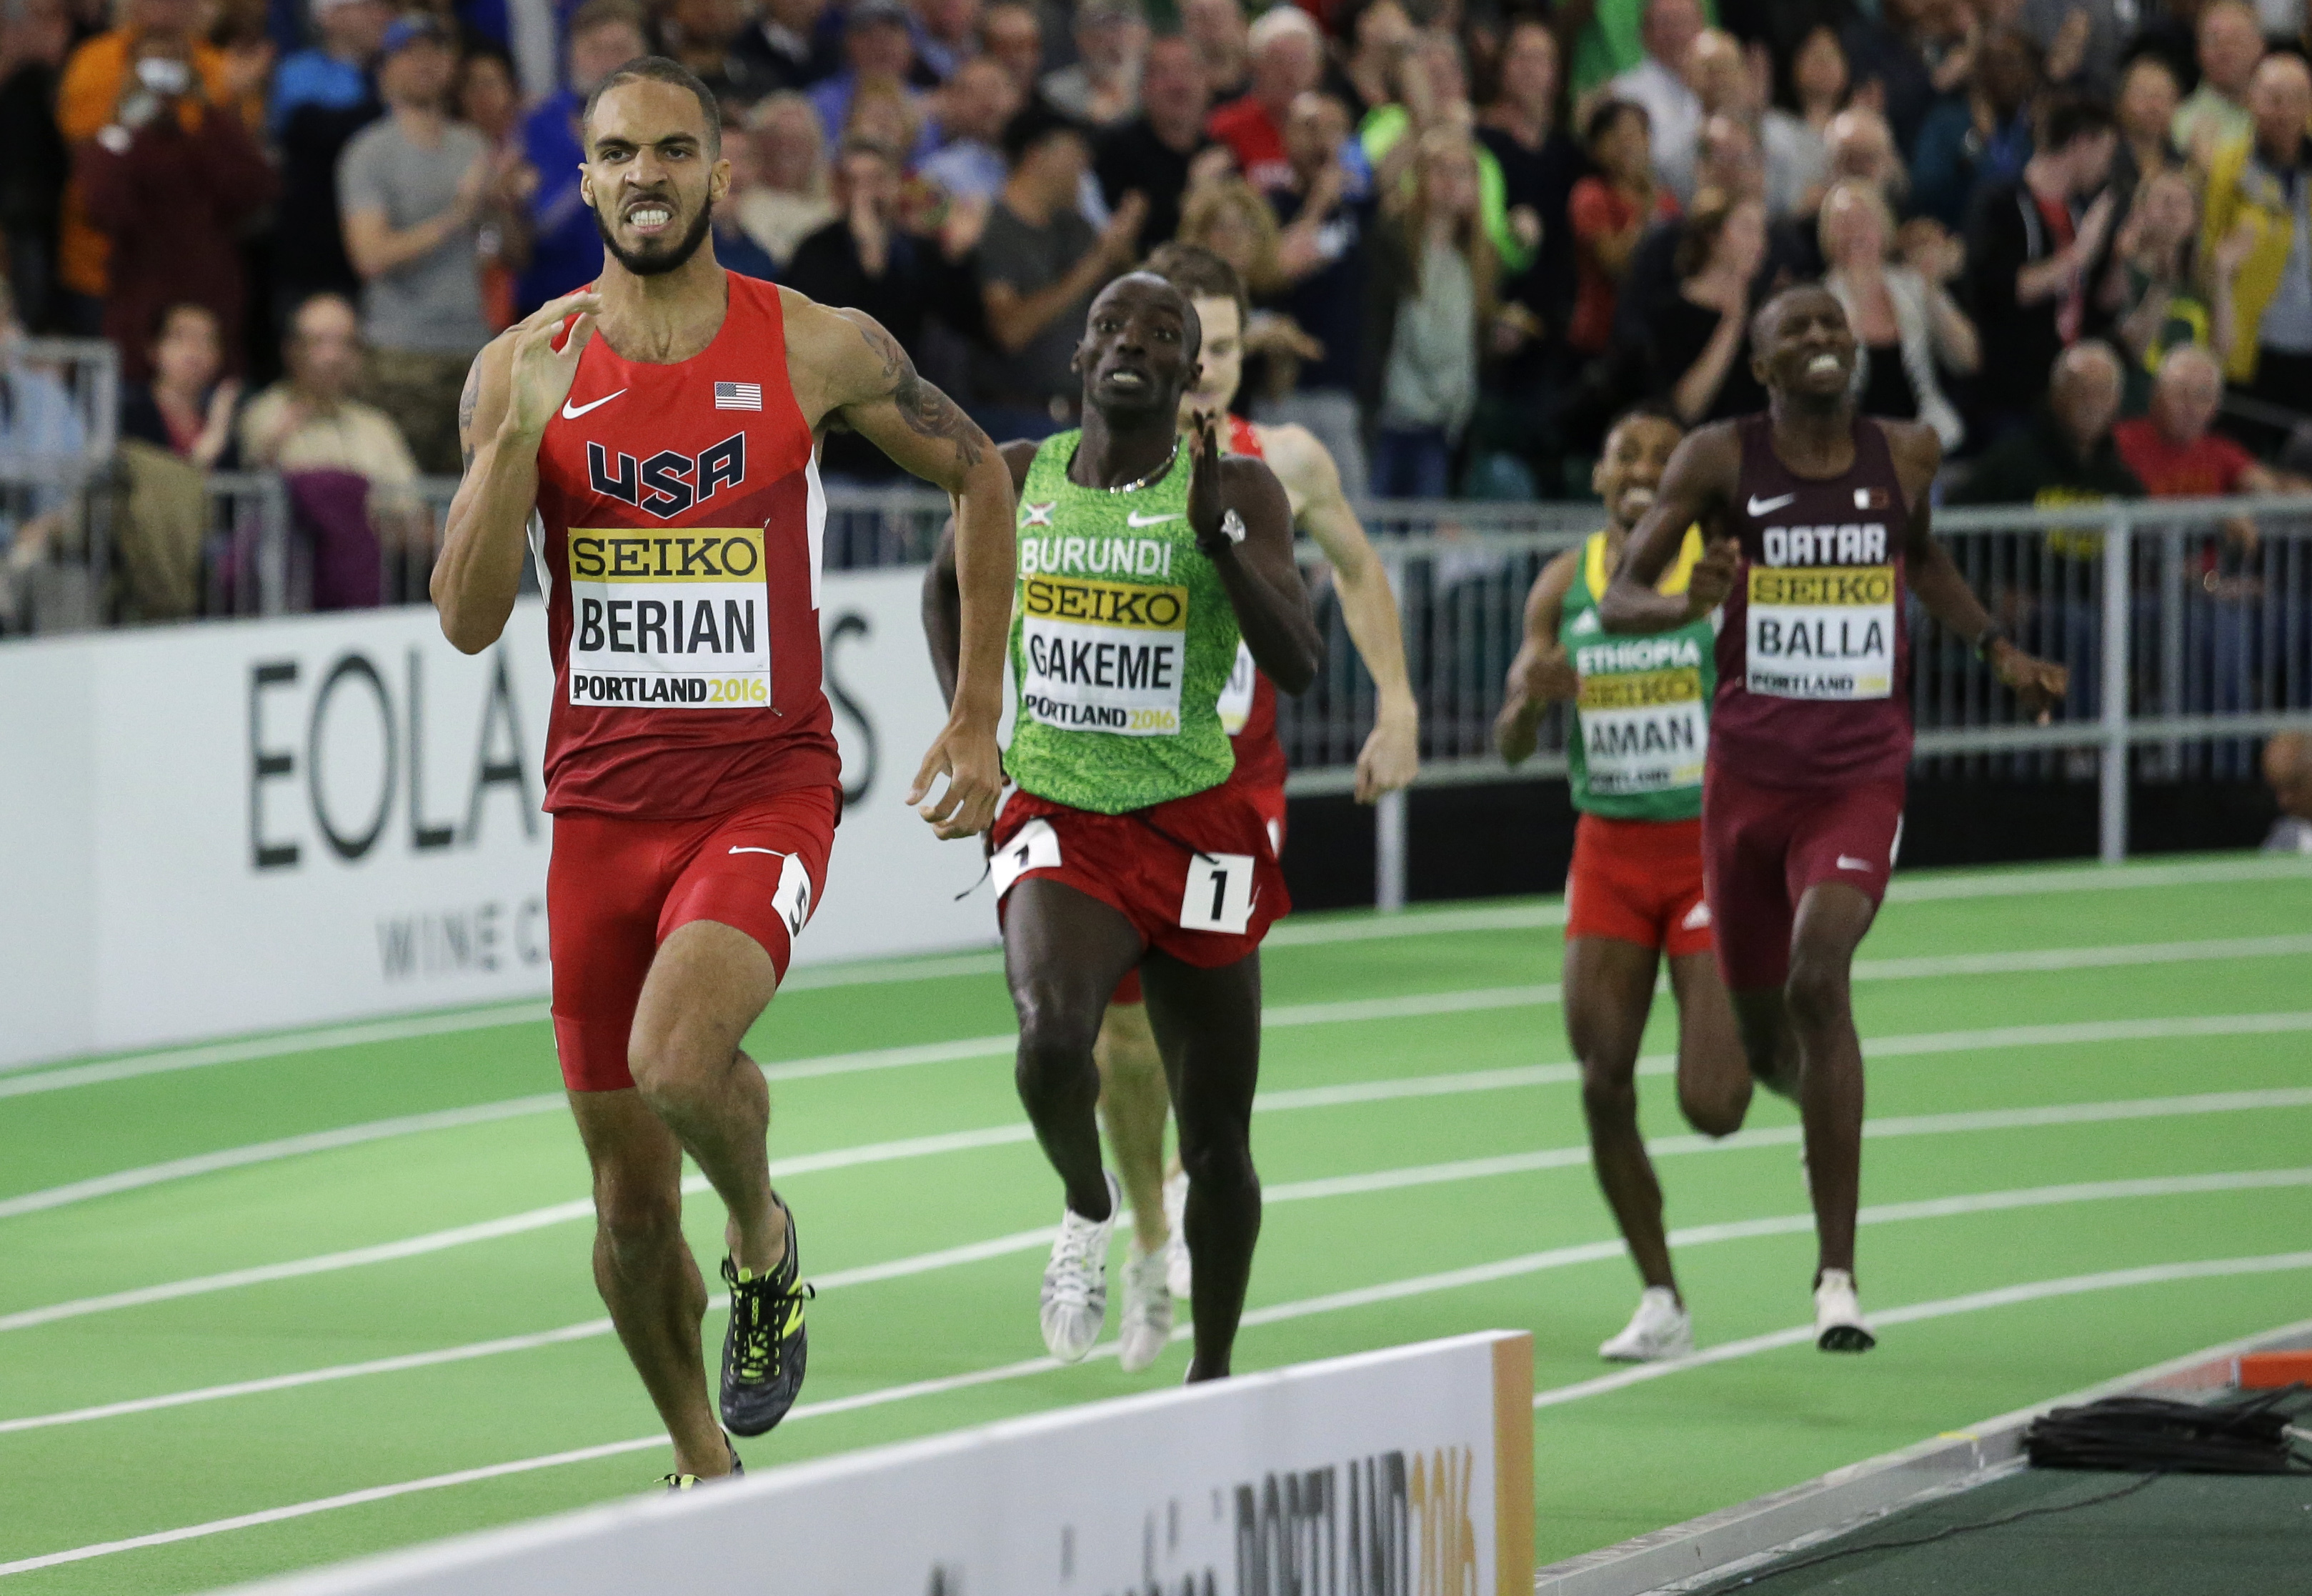 FILE - In this March 9, 2016, file photo, United States' Boris Berian, left, wins the men's 800-meter sprint final during the World Indoor Athletics Championships, in Portland, Ore. Berian has heard all the cute comments about him going from working at Mc